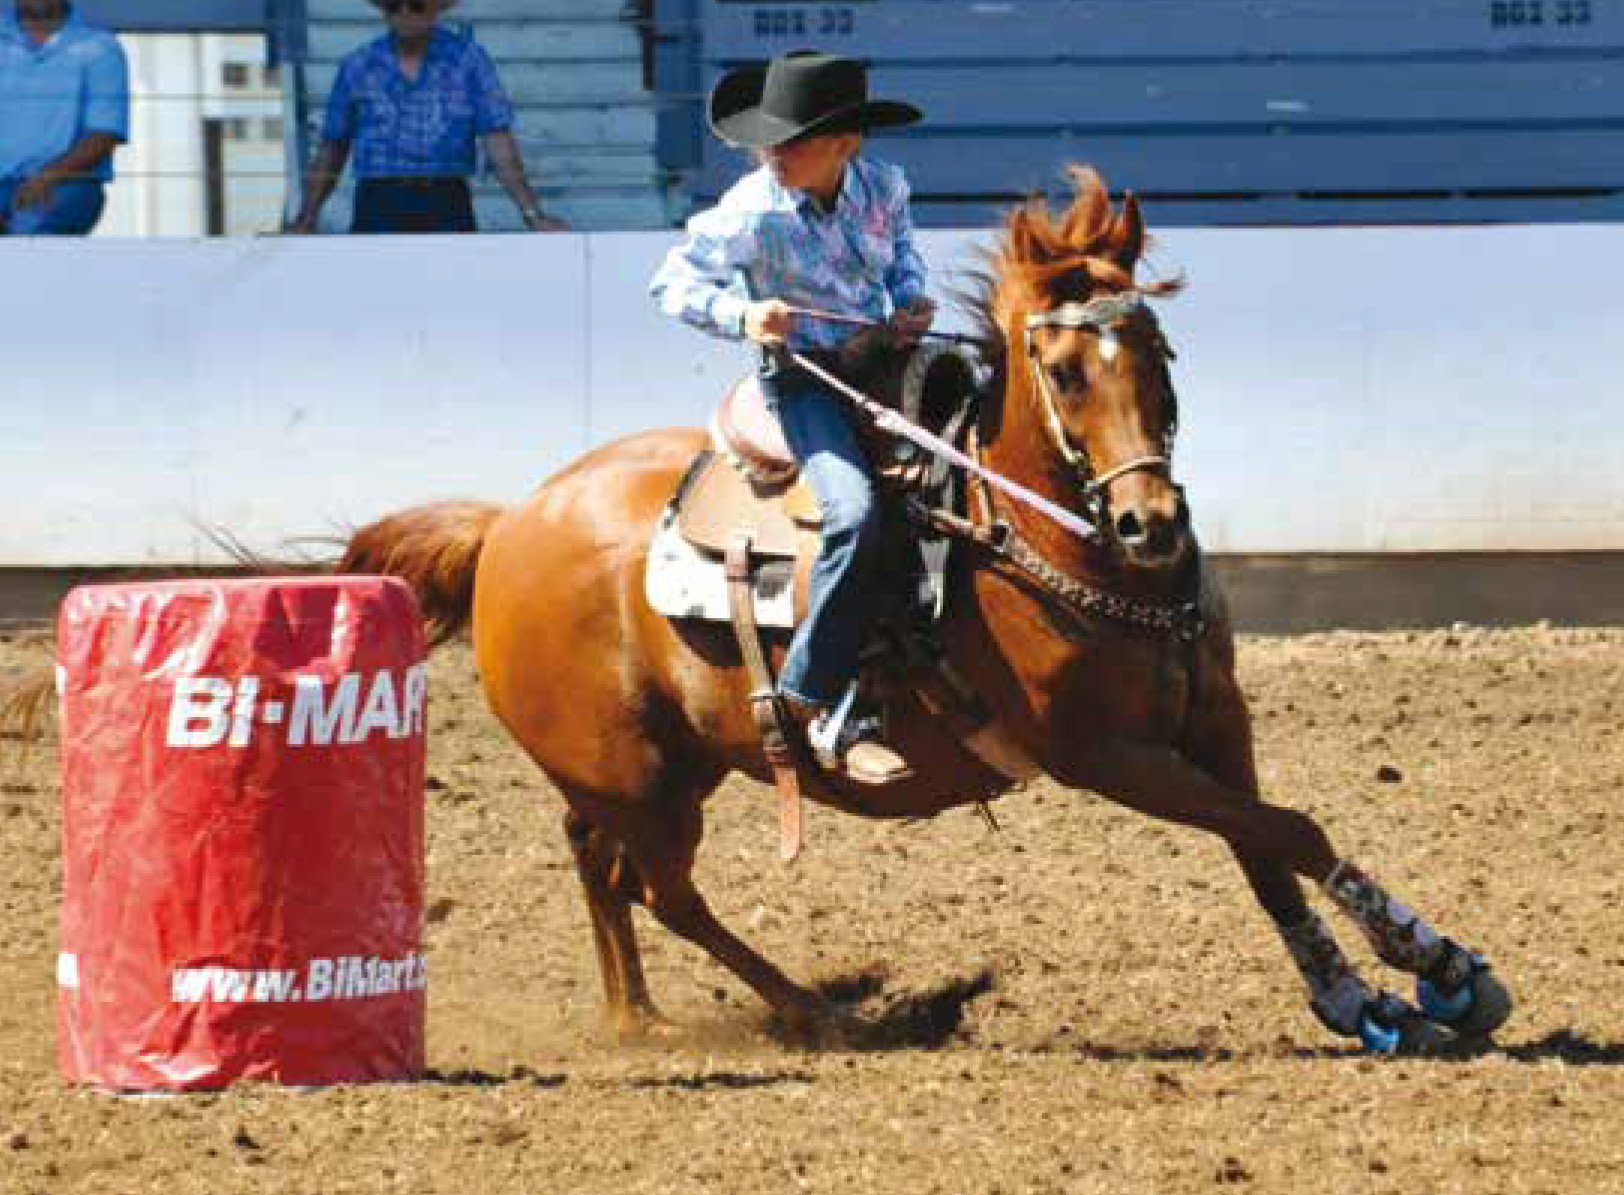 Joelle Mattox (9) barrel racing at the NW Youth Rodeo in St Paul, OR., © Ropin' The Moment Photography.